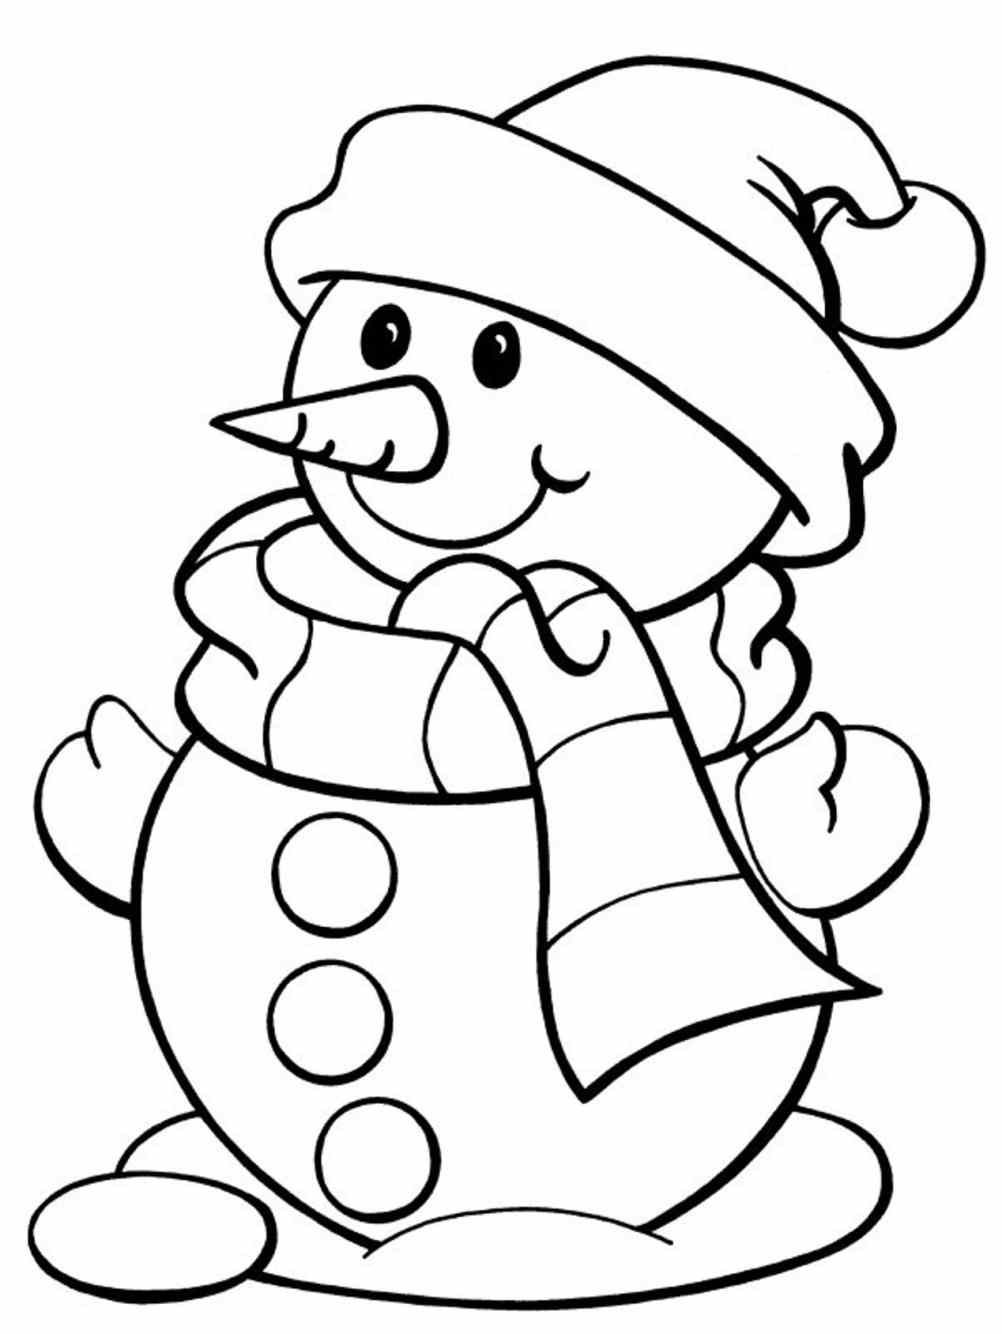 Snowman Coloring Pictures printable snowman coloring pages for kids ...